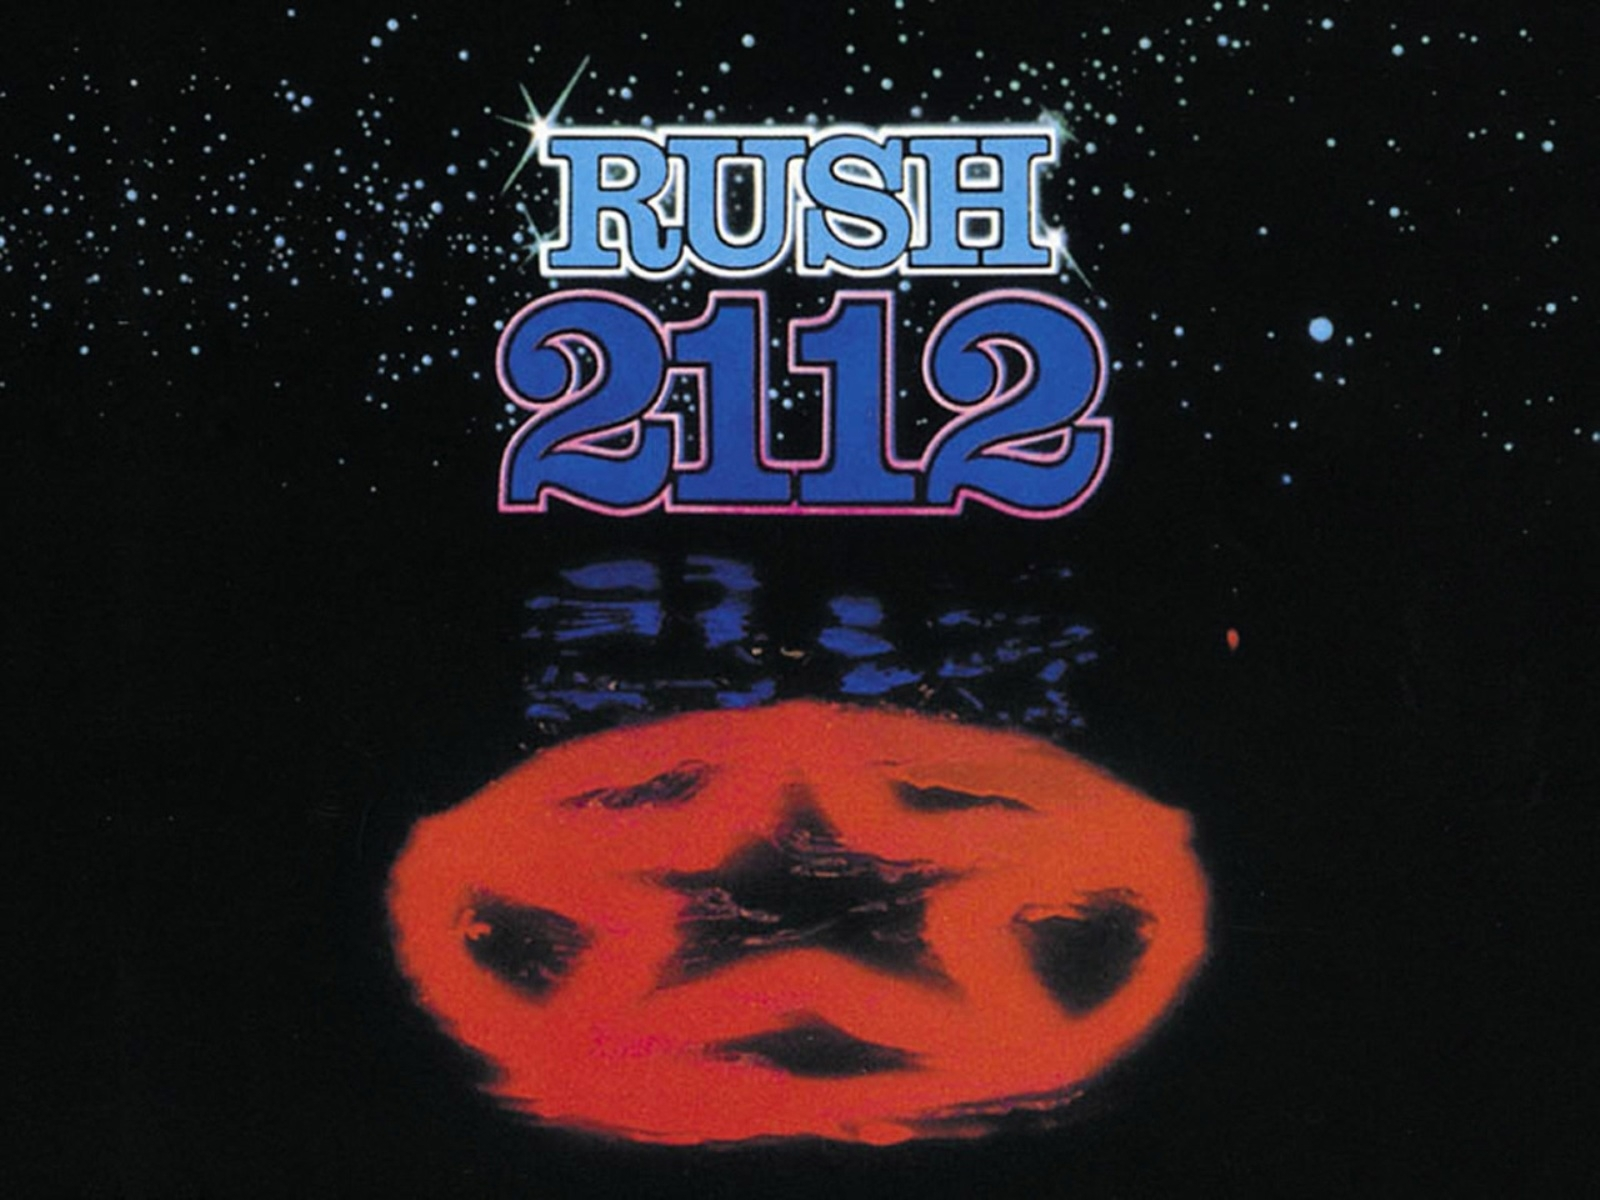 outer space music red stars symbol rush classic music bands 2112 album 1600x1200